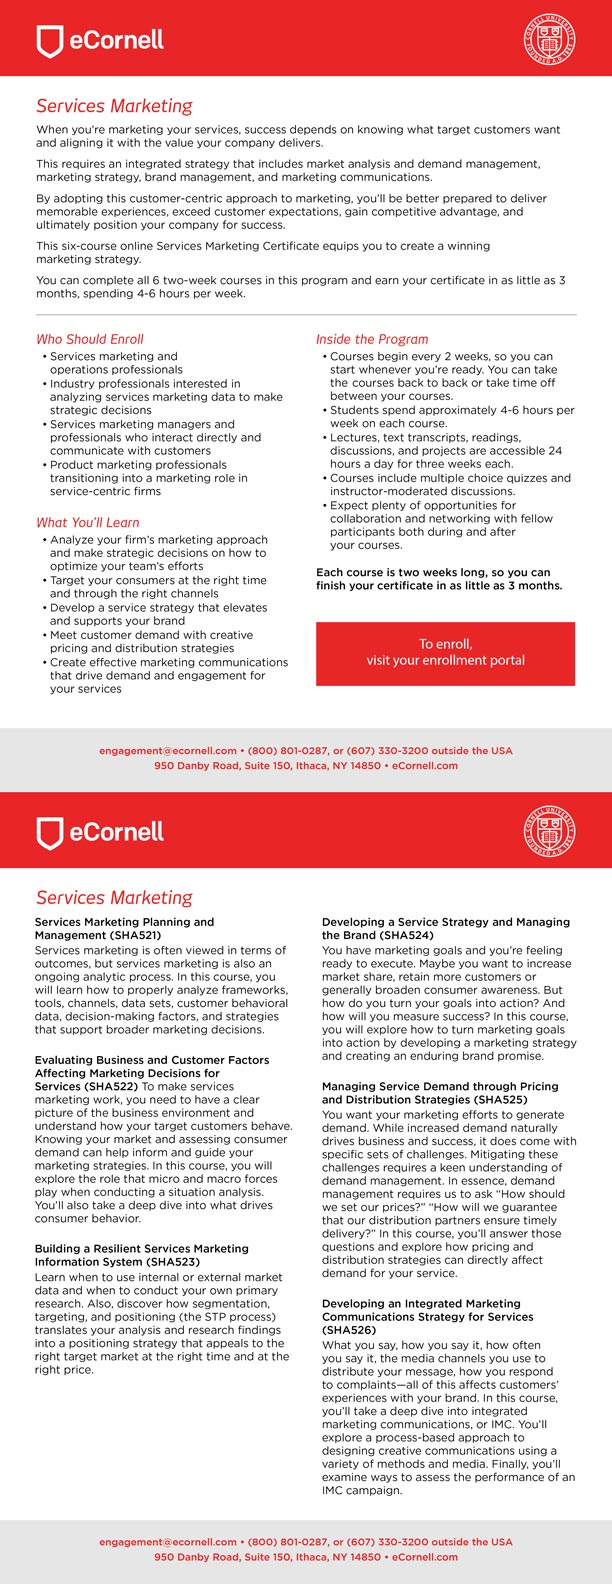 Services Marketing Flyer for Corporations